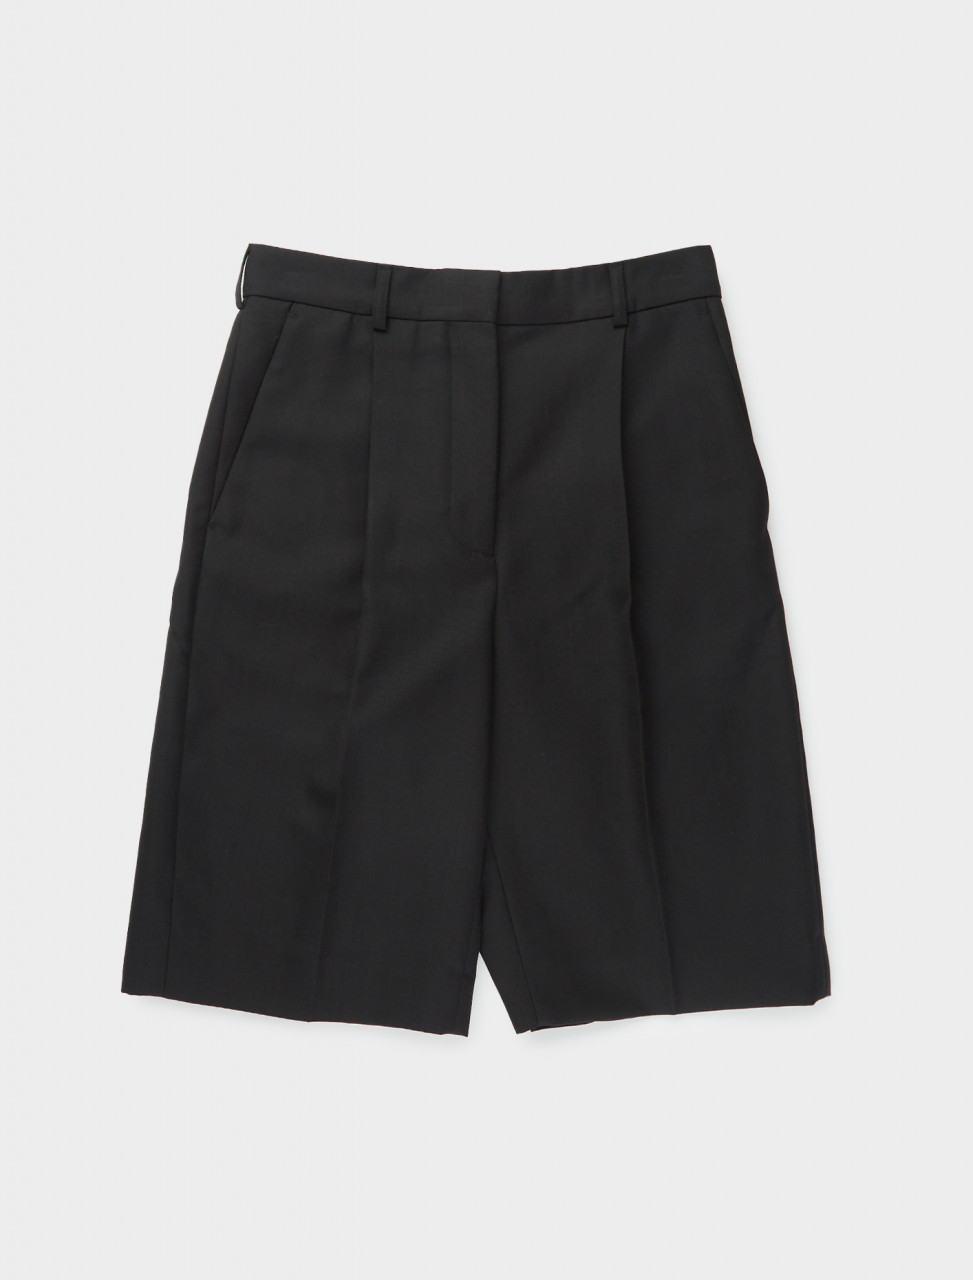 110-AE0026-900 ACNE STUDIOS PLEATED WOOL BLEND SHORT BLACK